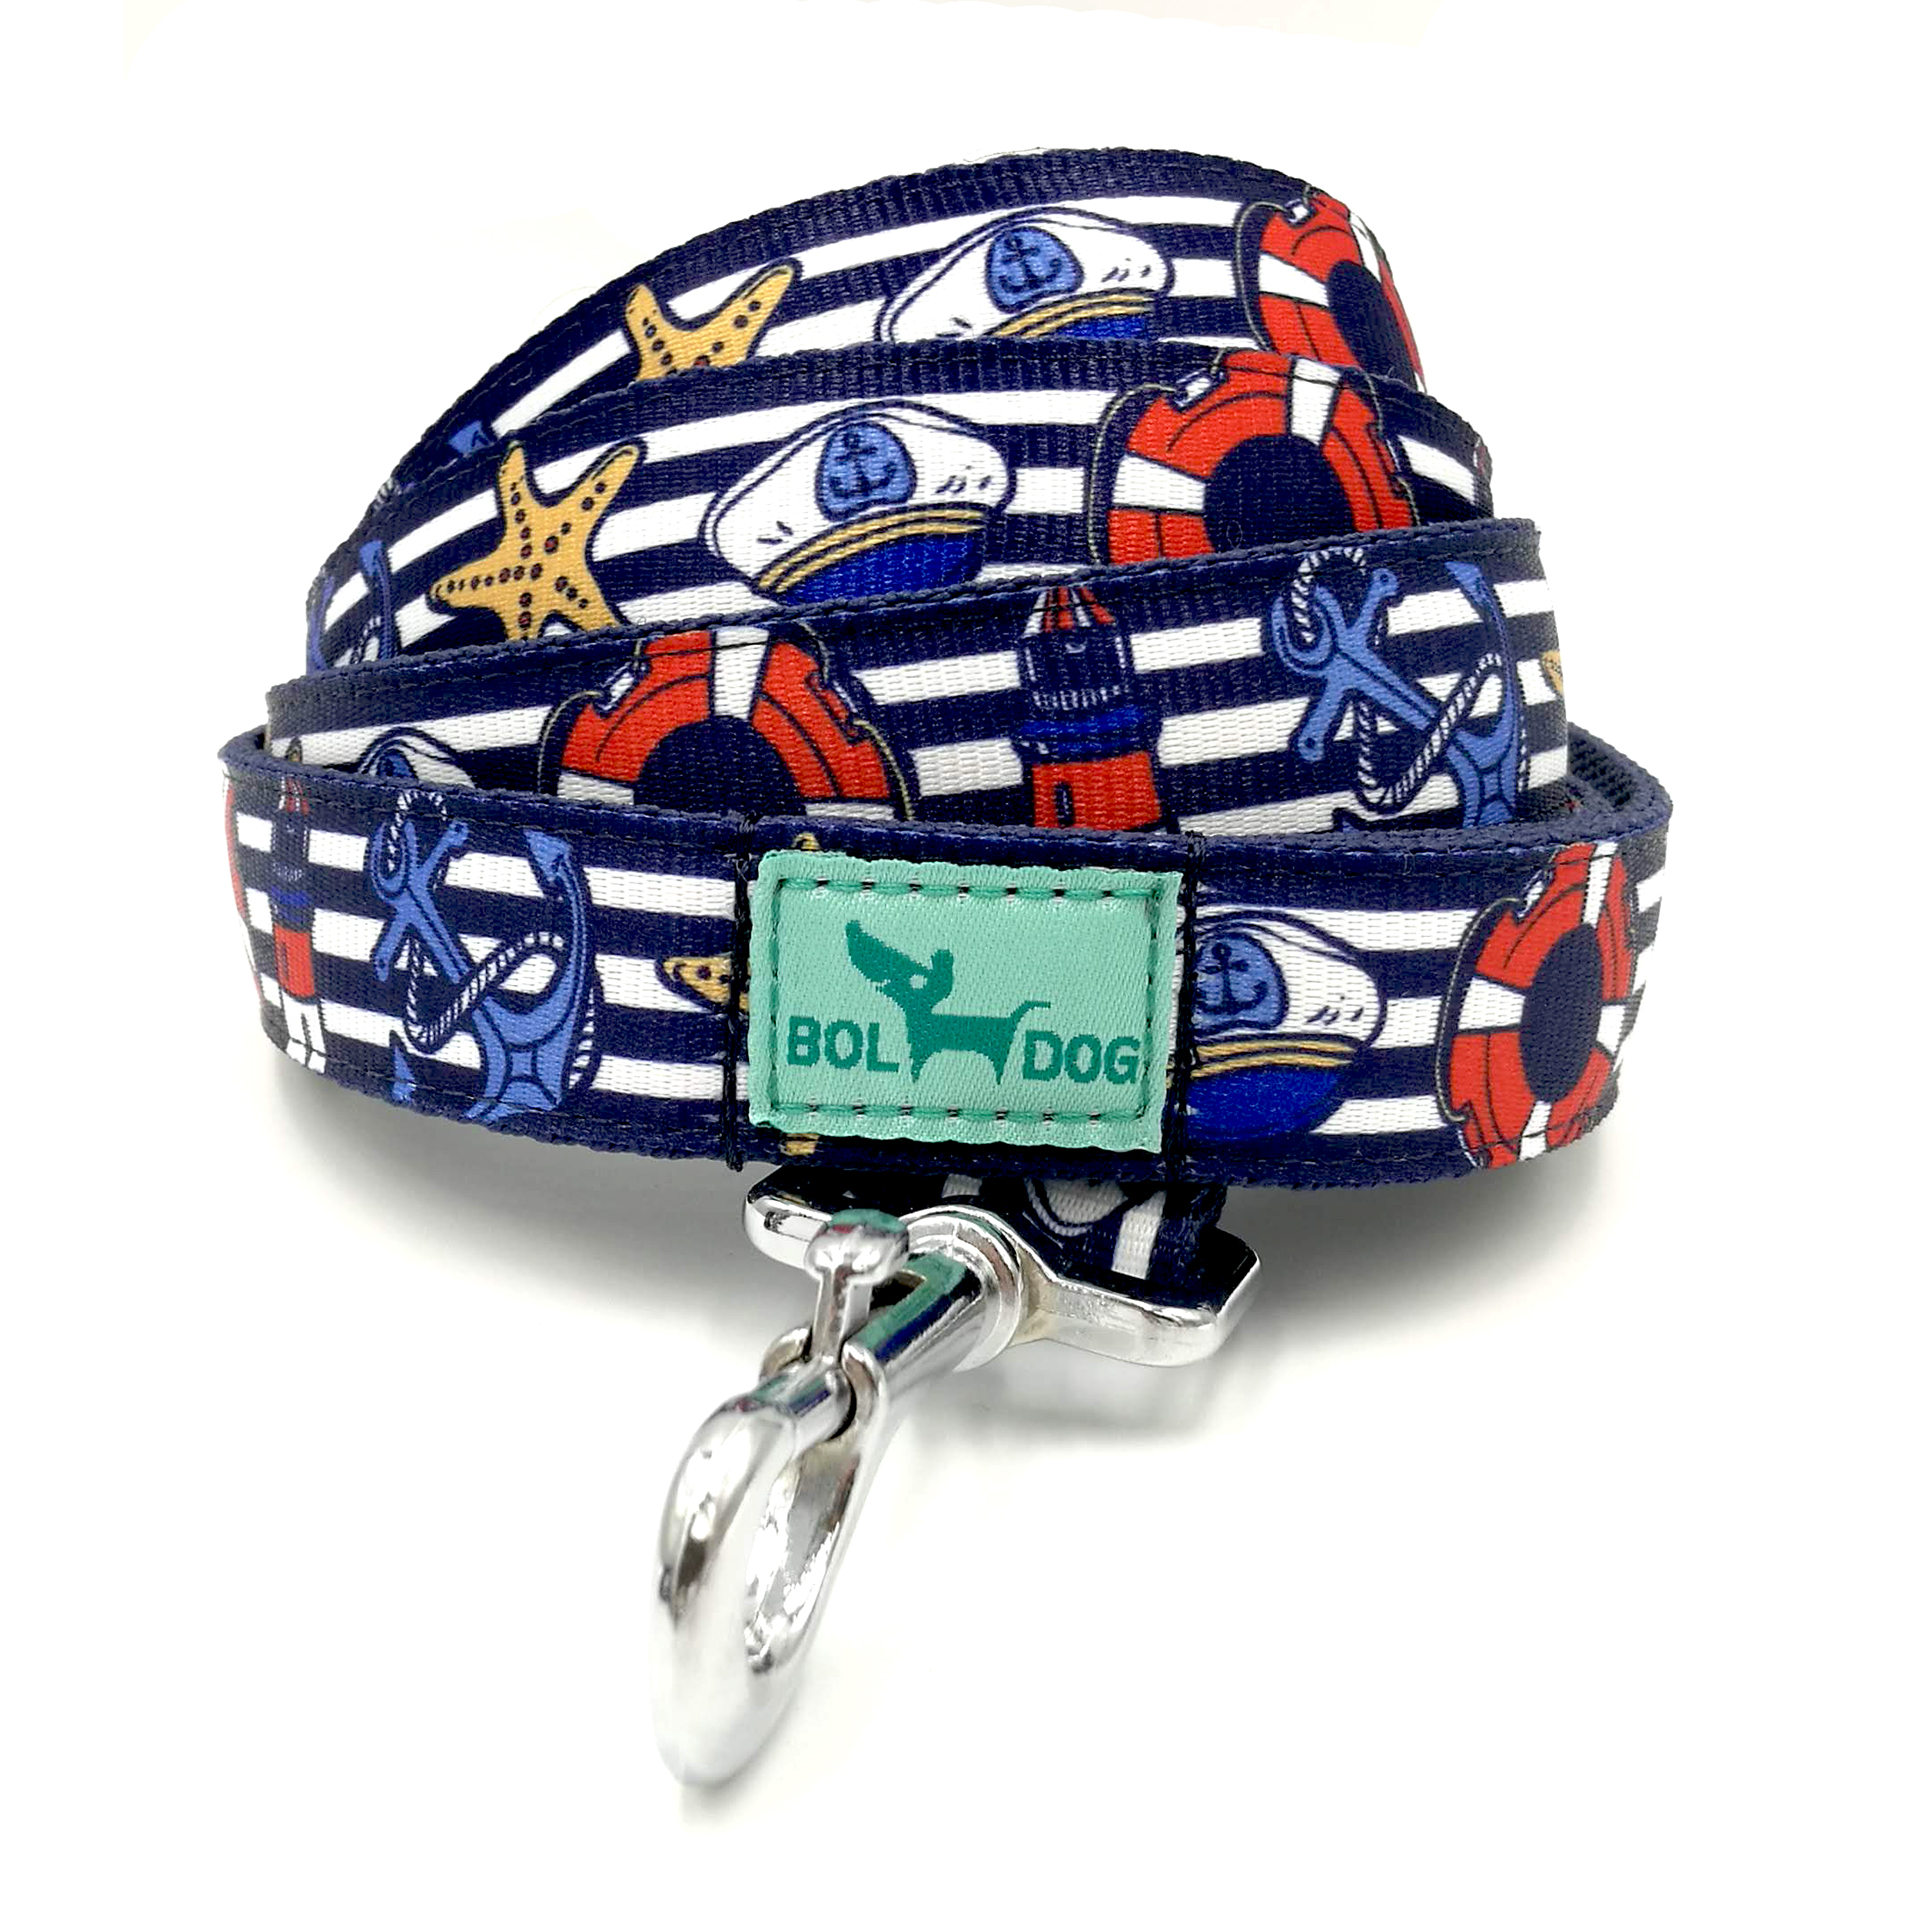 Marine blue dog leash